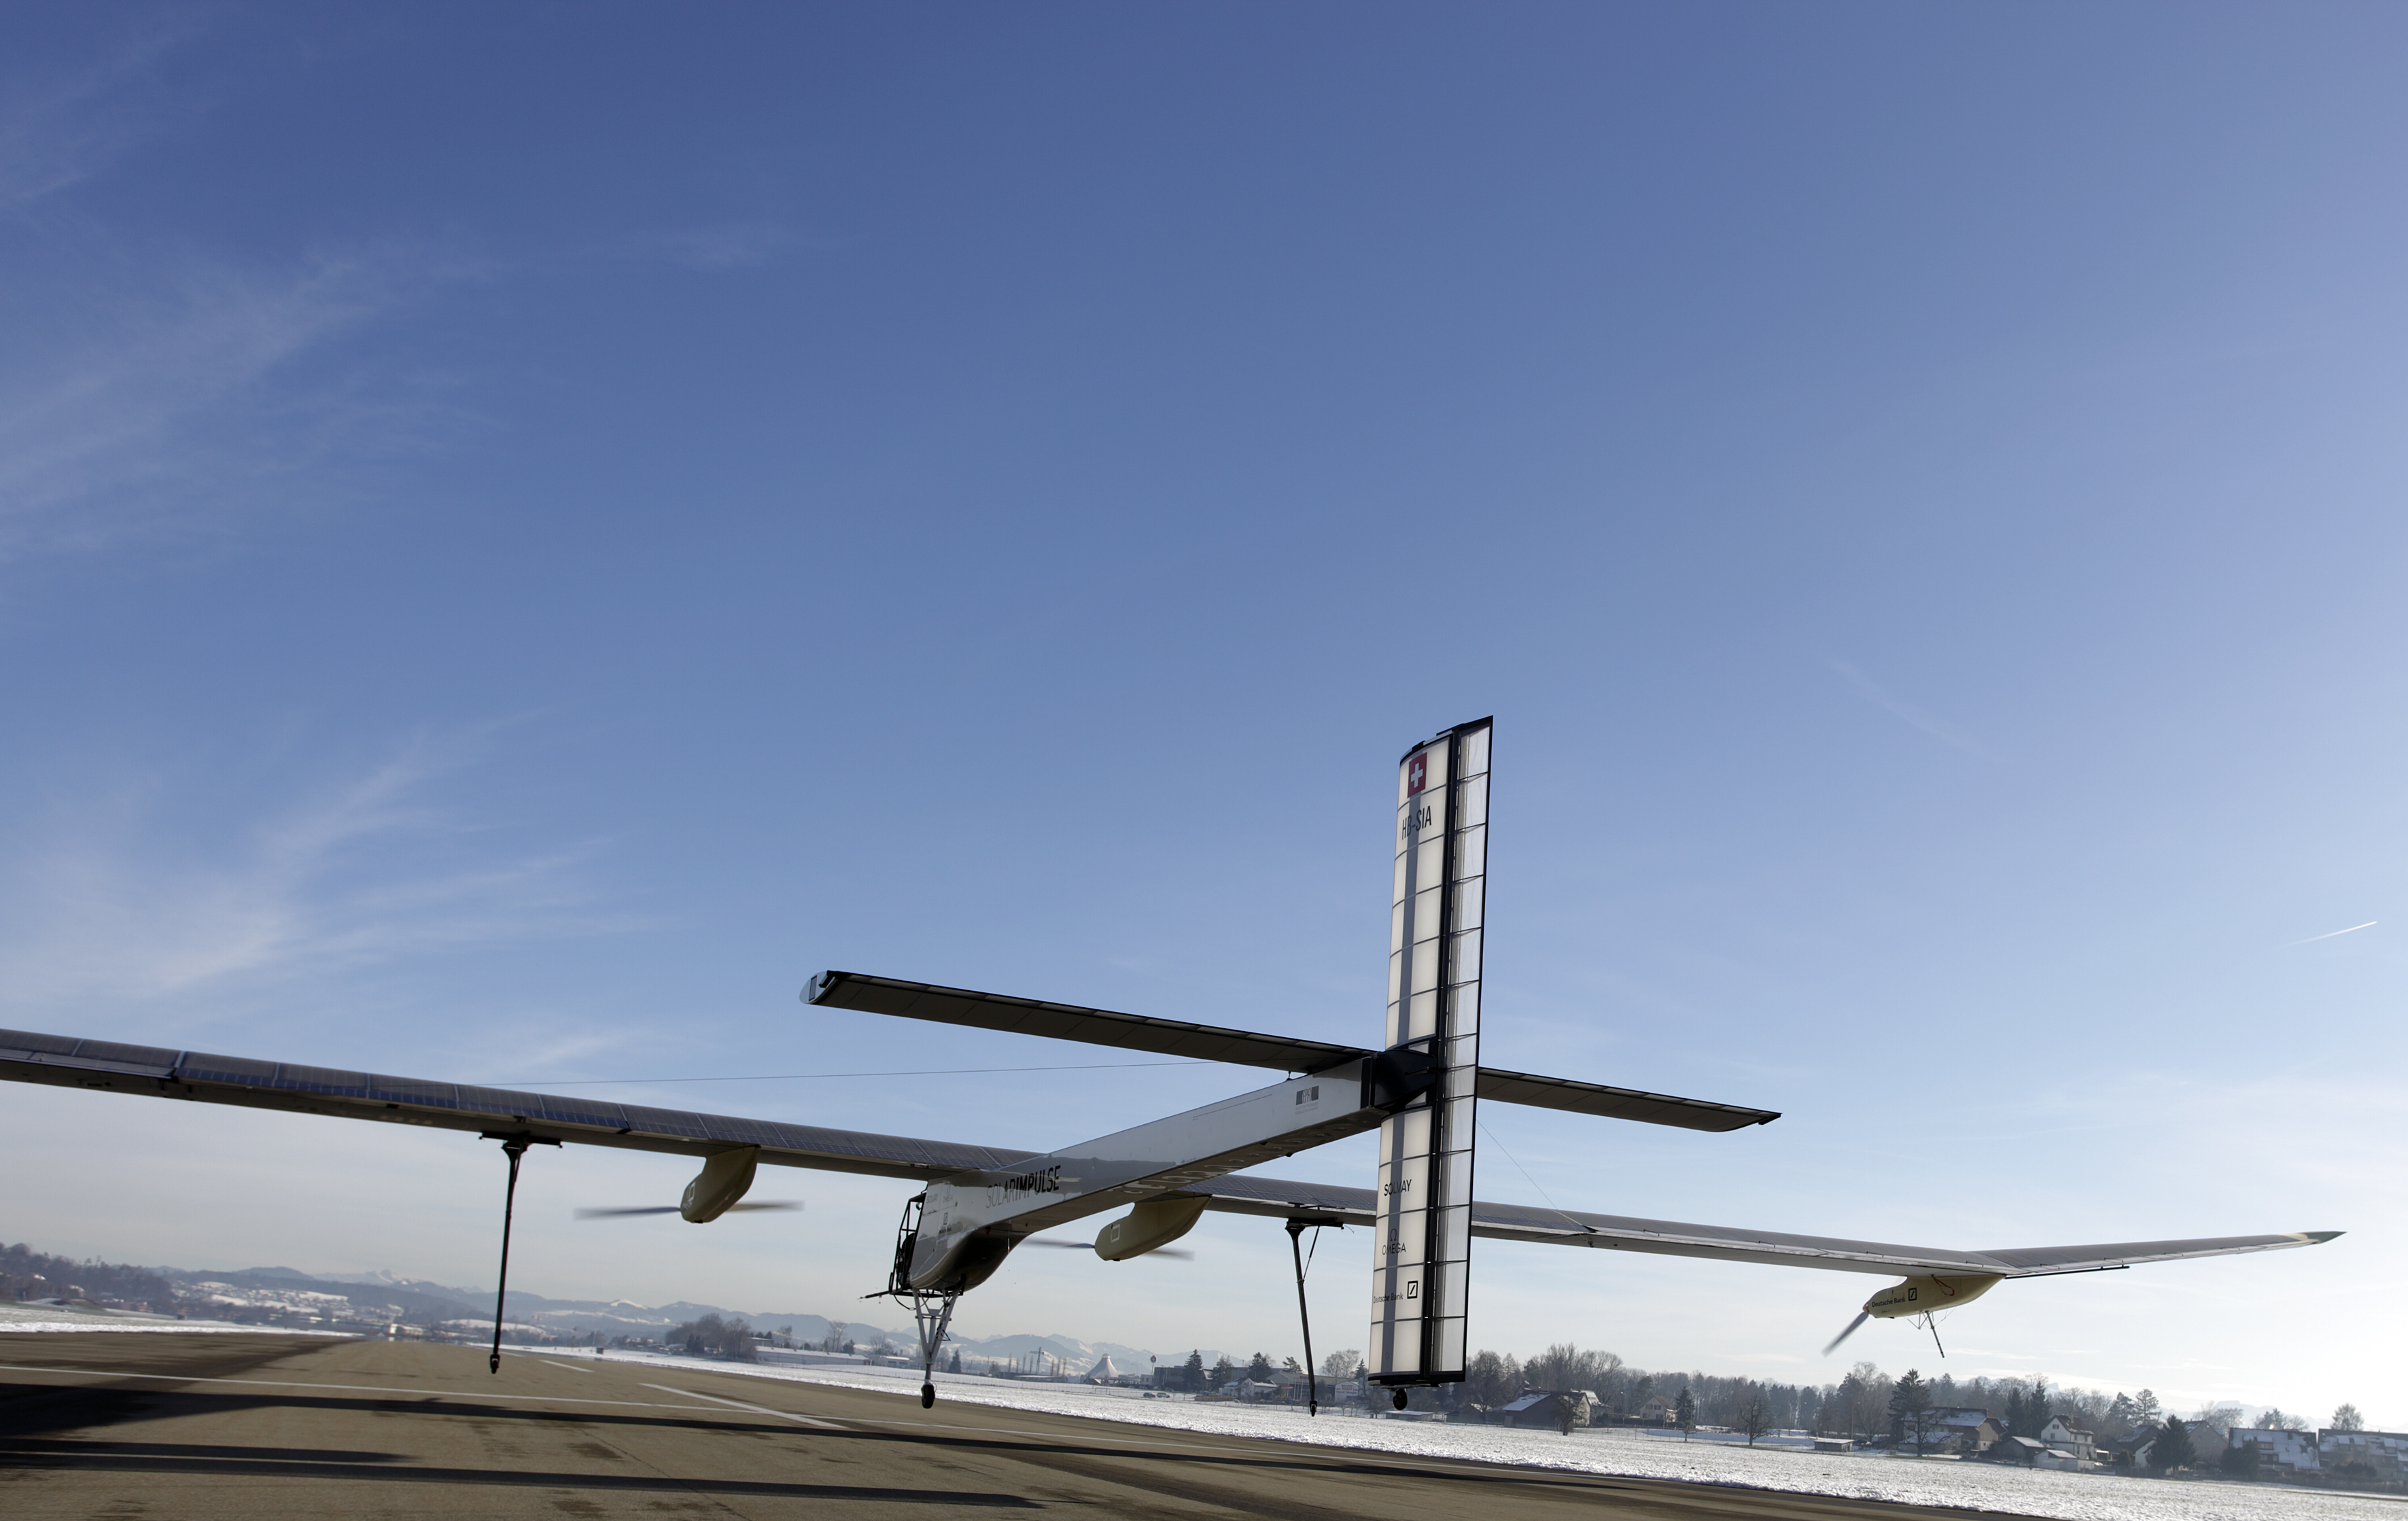 SolarImpulse, the solar-powered plane